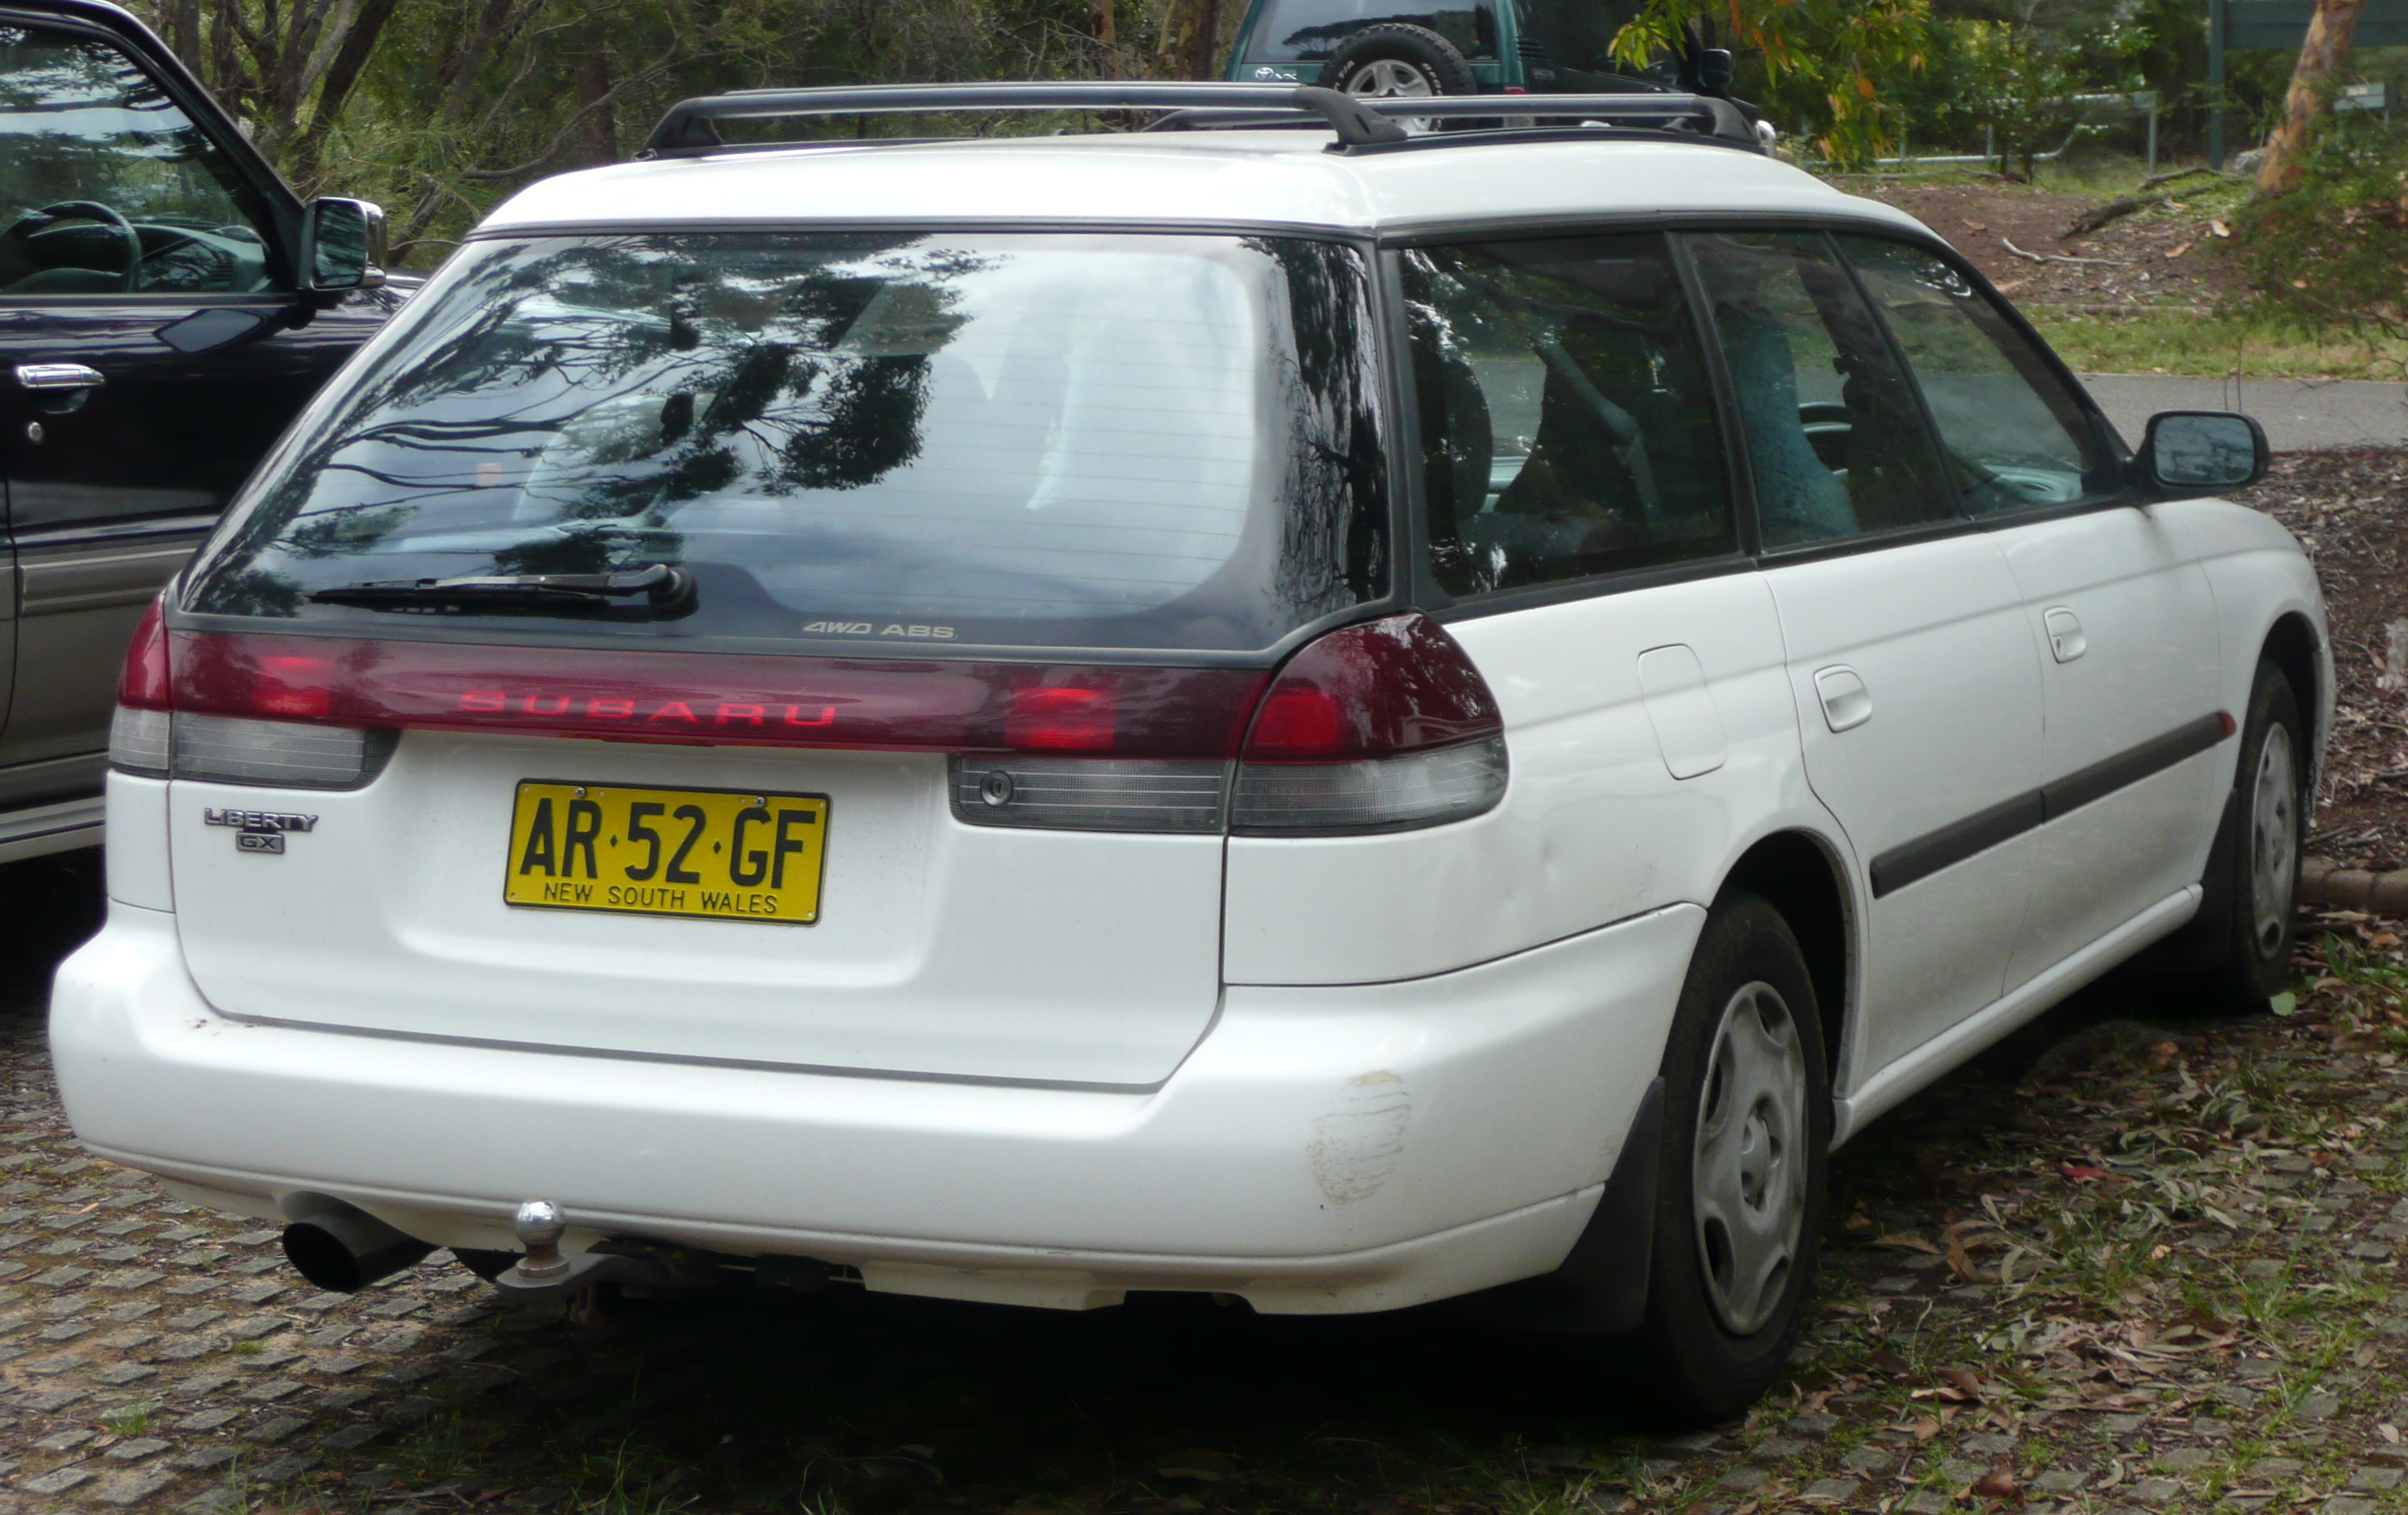 1998 Subaru Legacy Outback Wagon Awd Pictures Information And Specs Auto 2985x1878